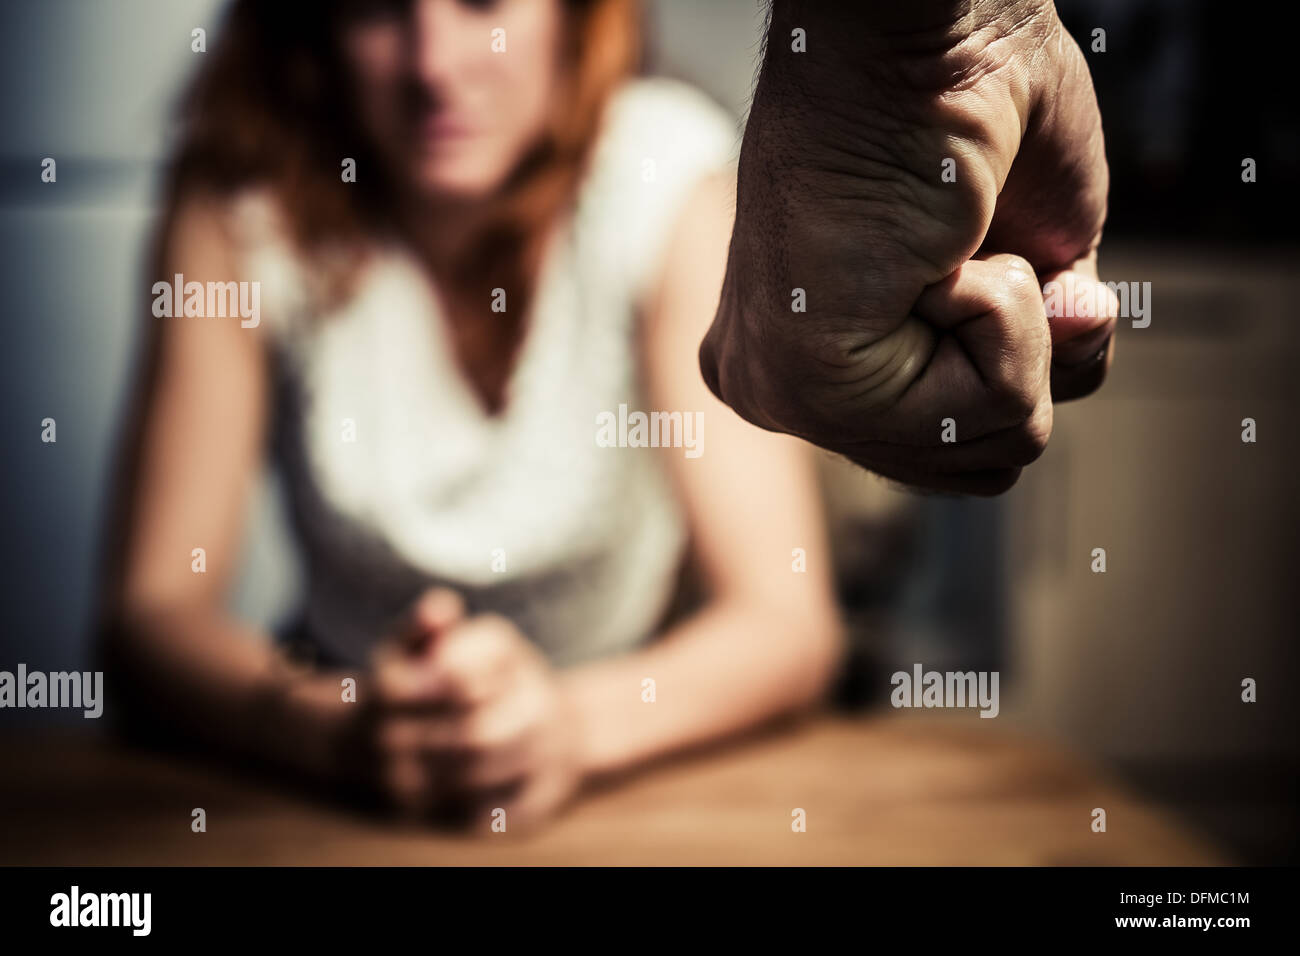 Close up on a man's fist with a woman in the background - Stock Image